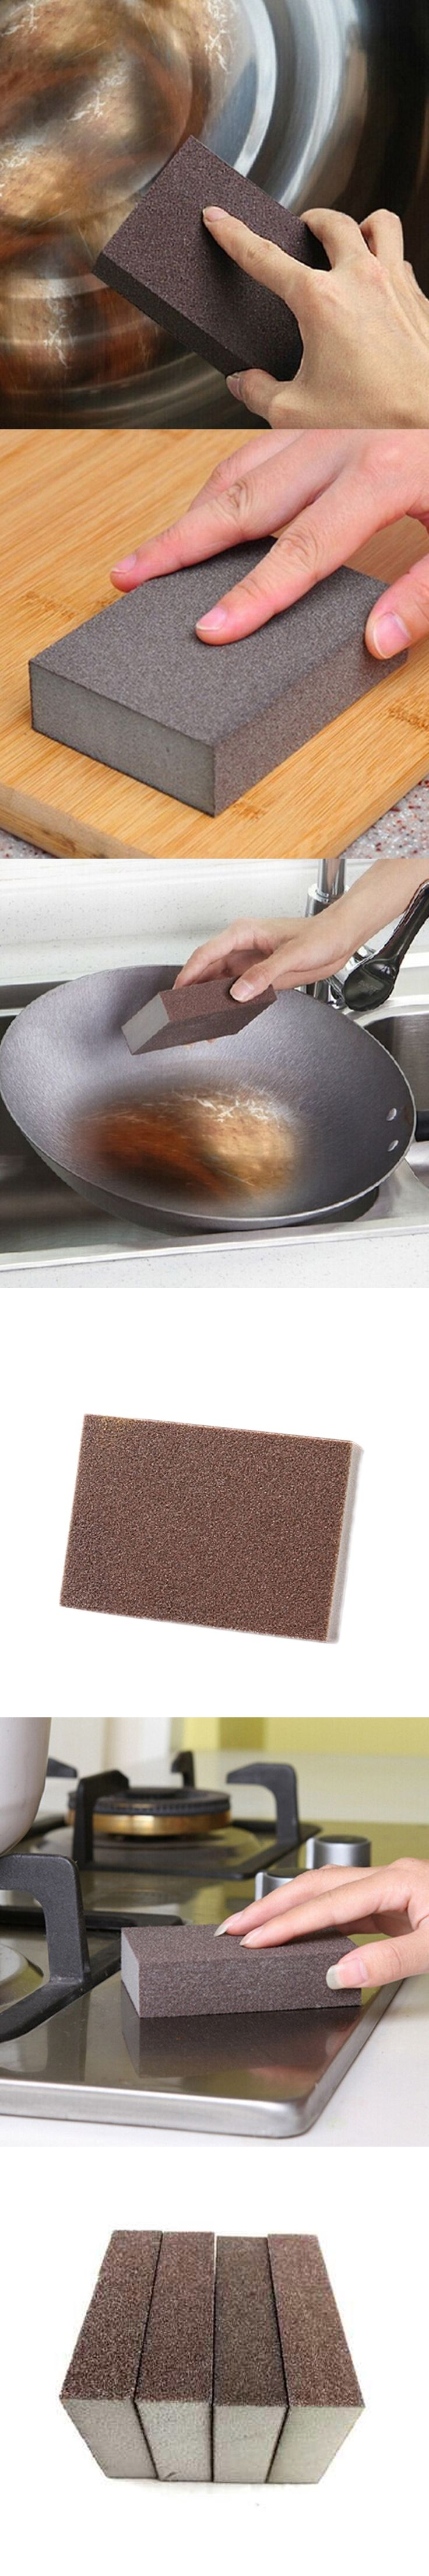 Rectangular Fine Sanding Sponge Block Reusable Wet Dry Blocks Coke Stains Helper HG-2404